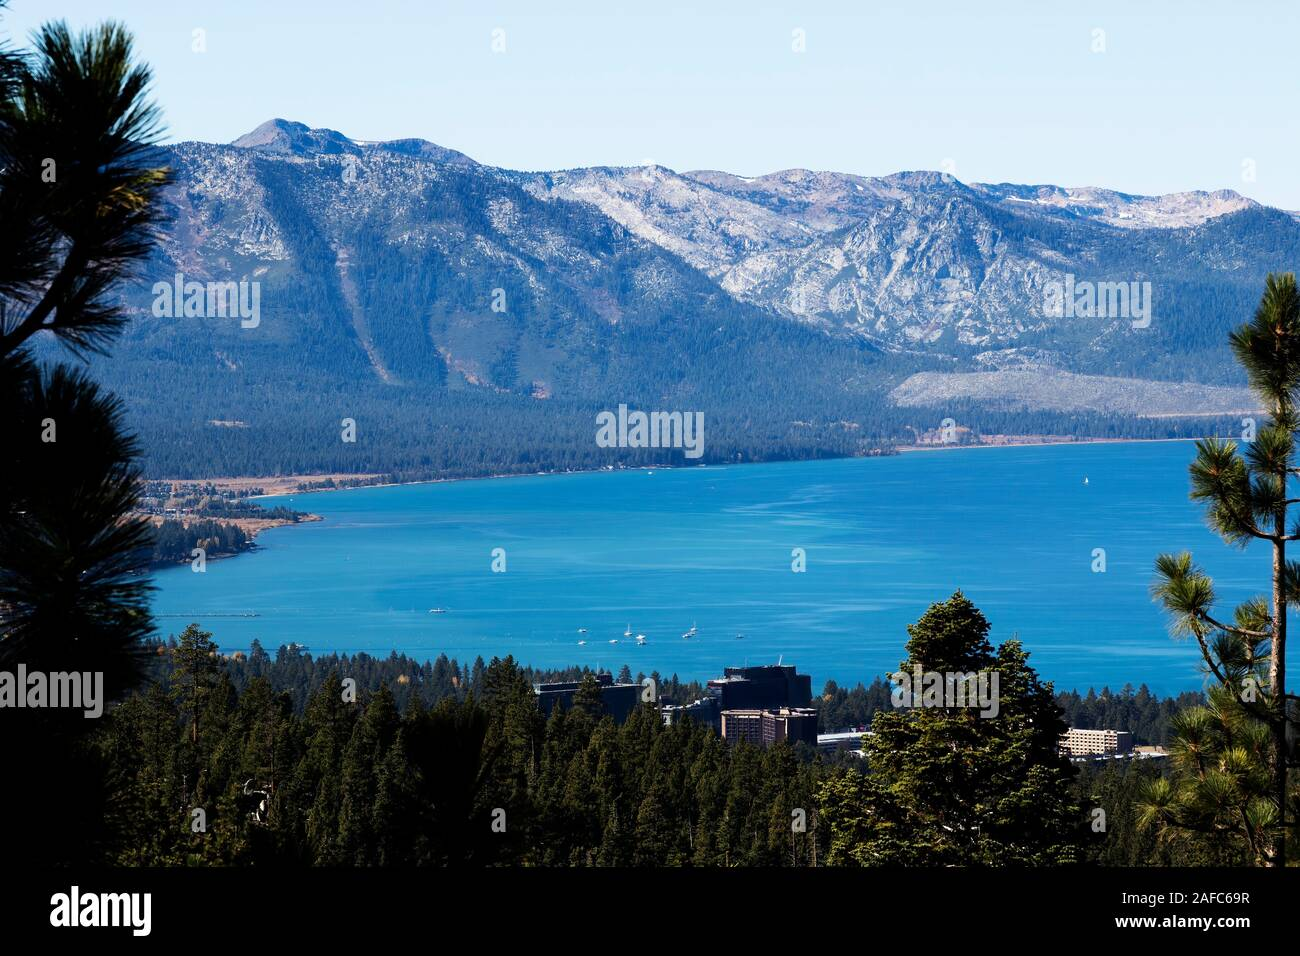 South Lake Tahoe And State Line Nevada Seen From Hills Through Trees With Mountains Stock Photo